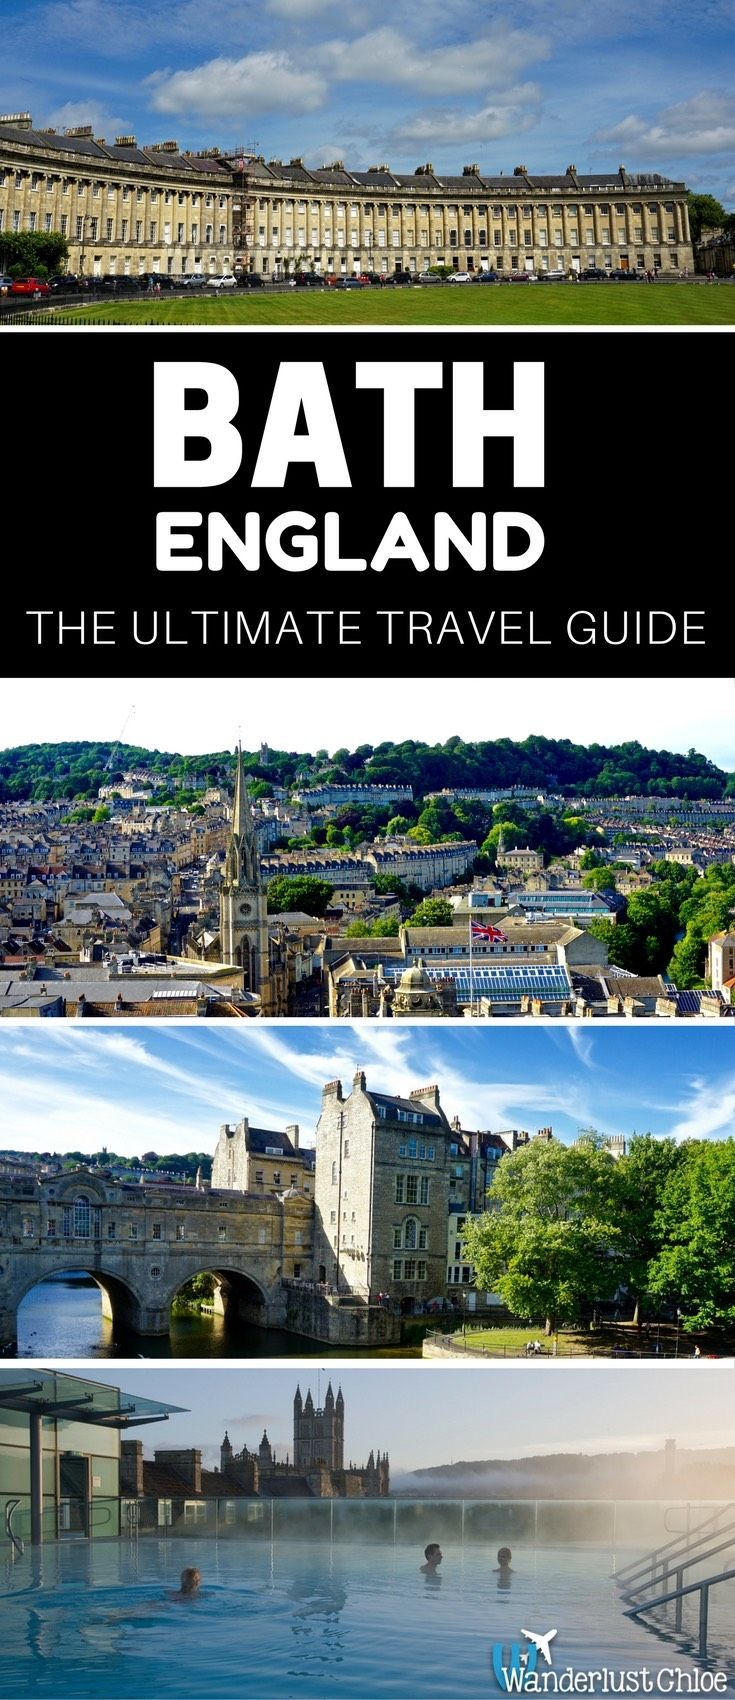 Bath, England: The Ultimate Travel Guide. Find out the top things to do, the best restaurants, hotels, and some insider information to help you plan your day trip or holiday to Bath in England.